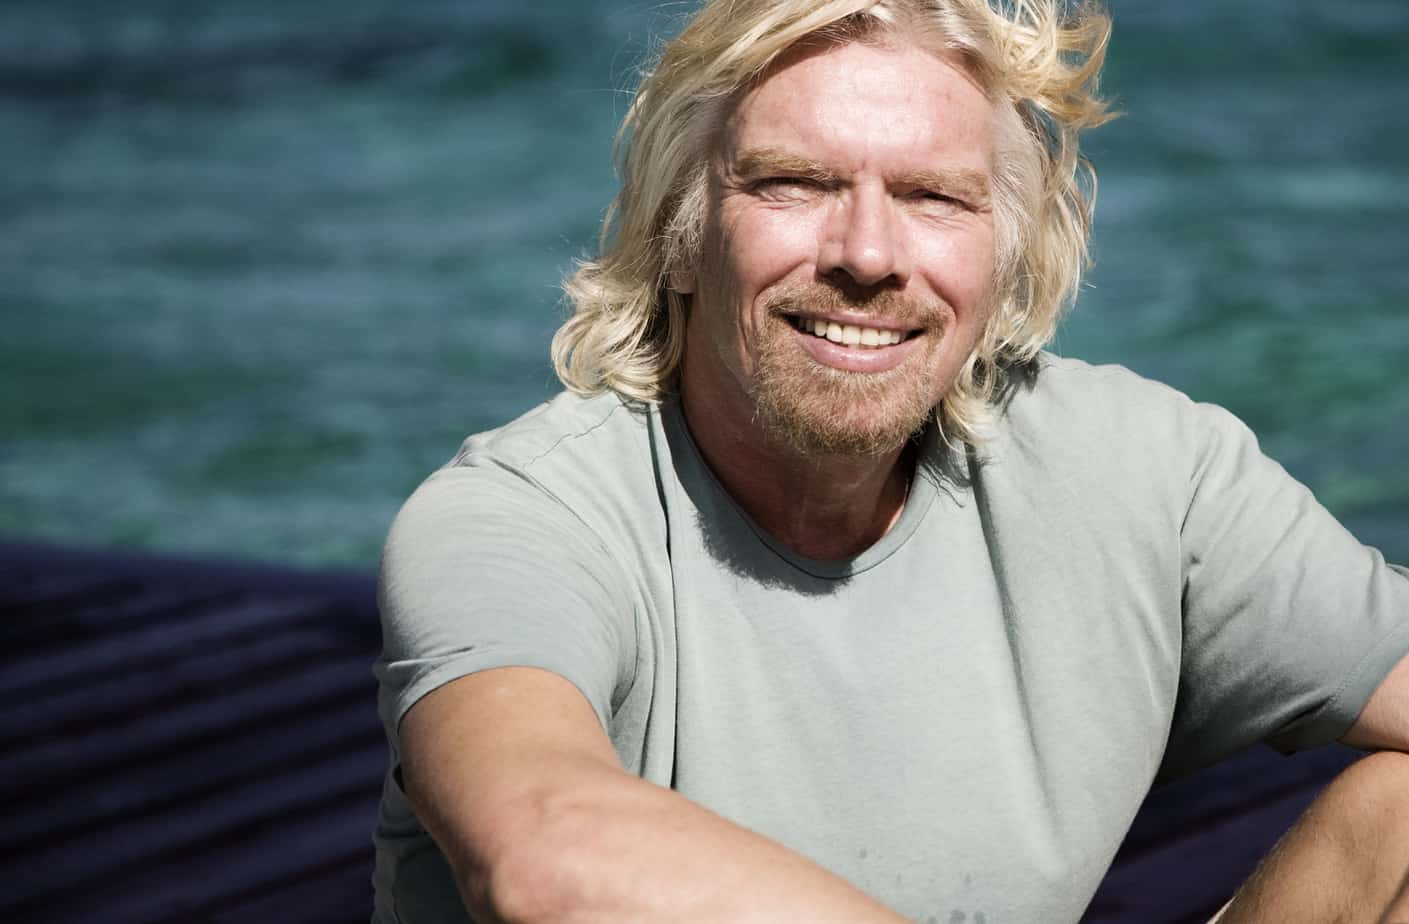 richard branson - photo #42